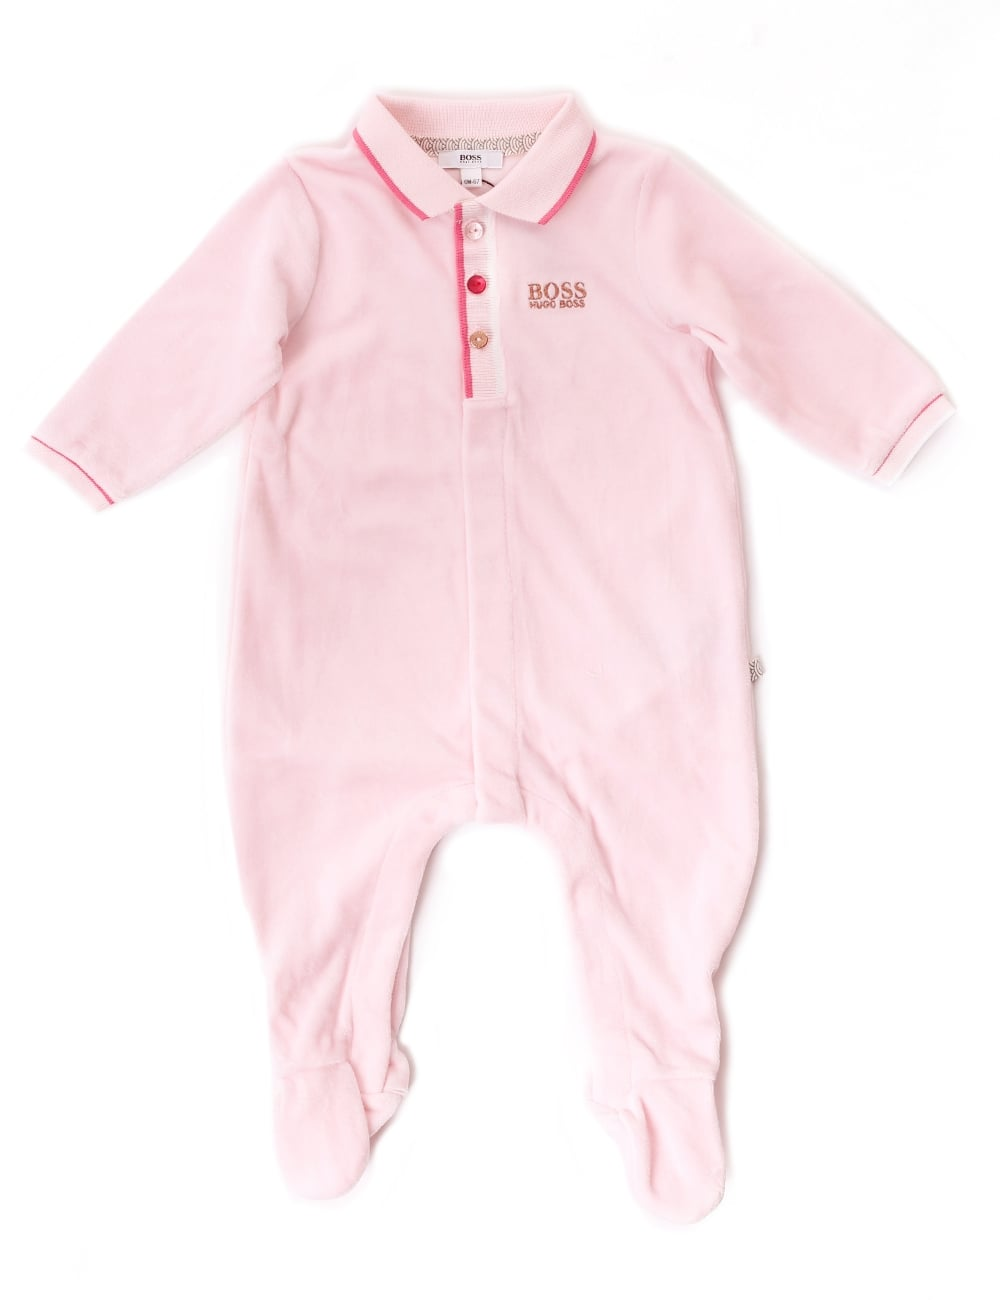 0d2d07884f76b Hugo Boss Baby Girls One Piece Pyjamas